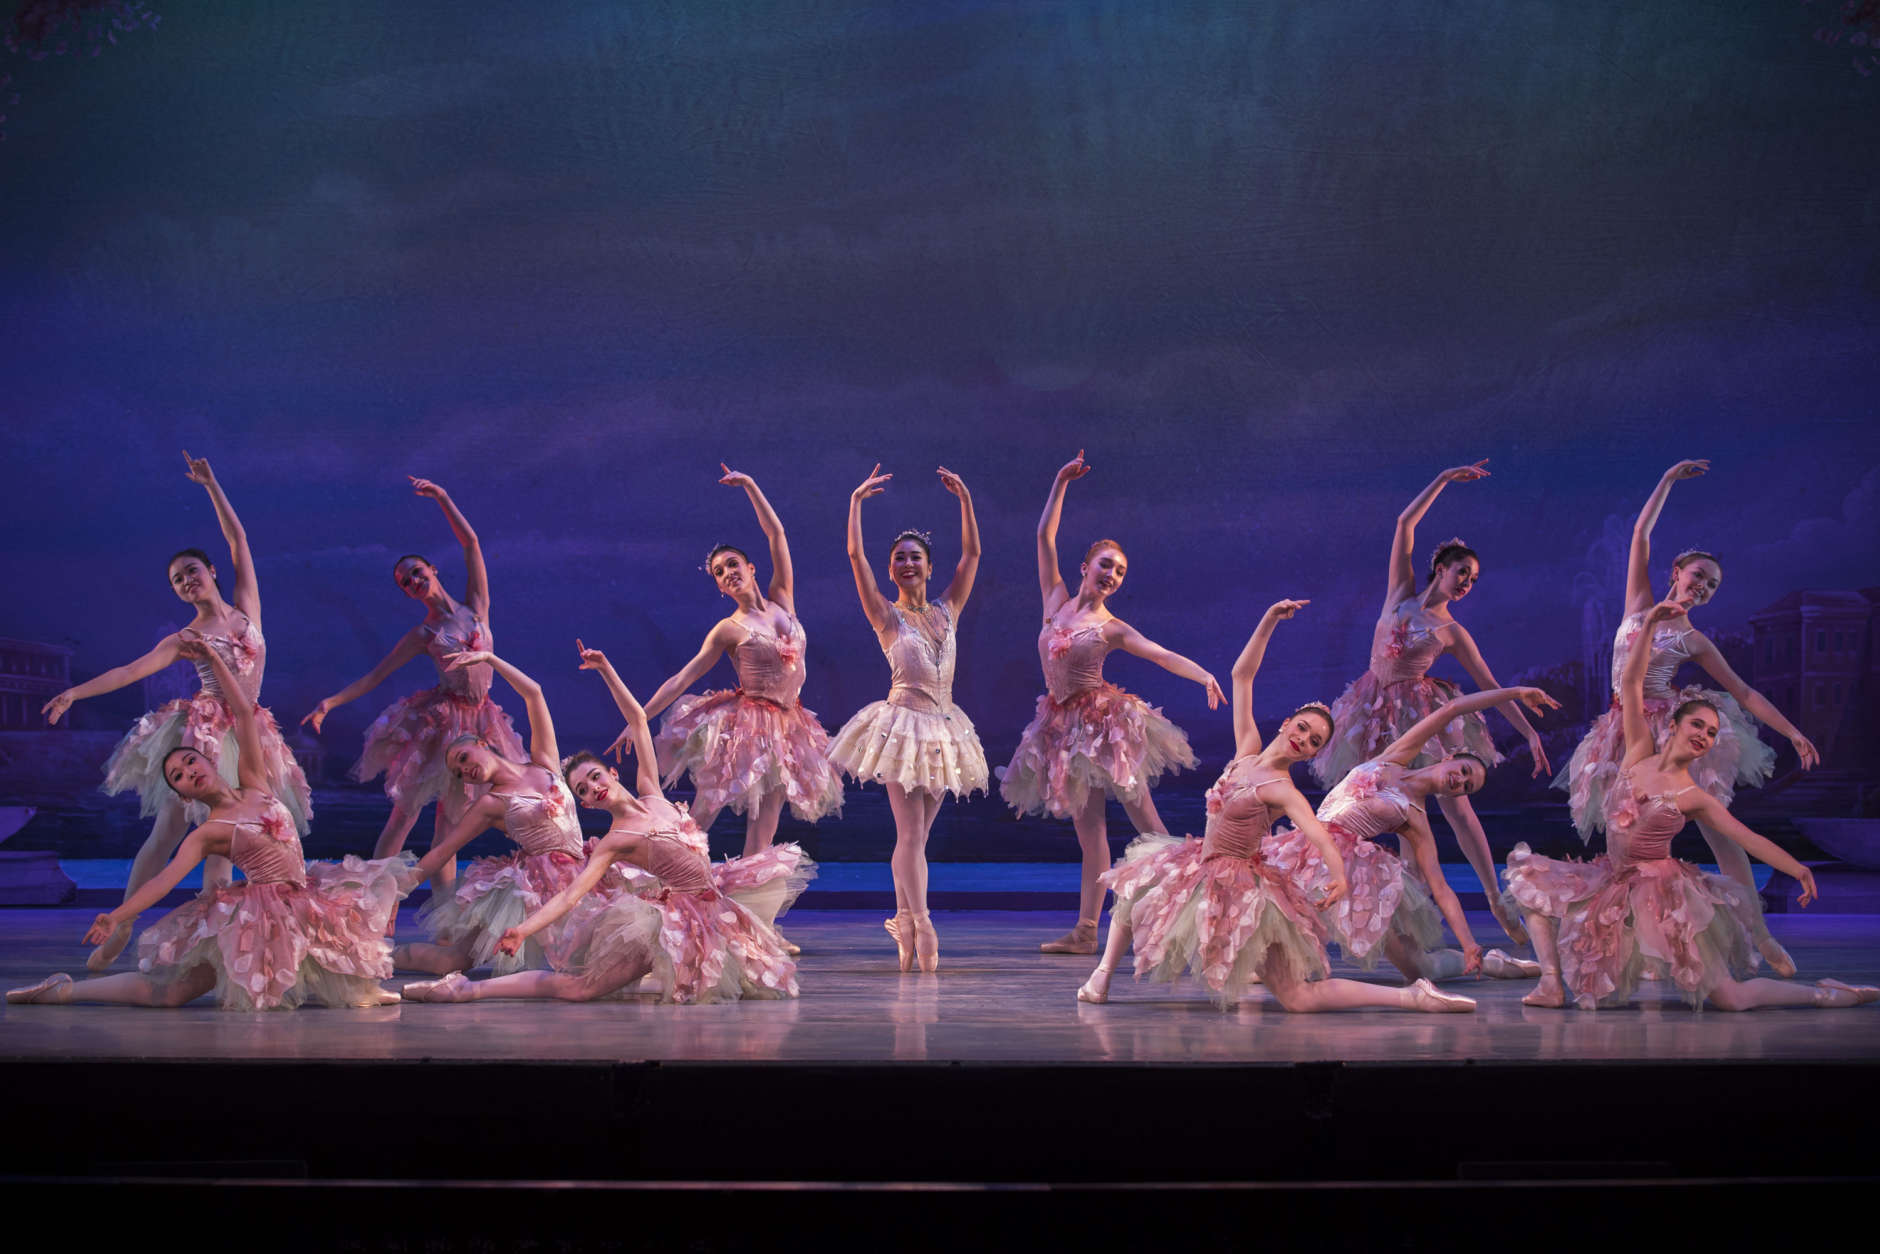 """<p><strong>Take in a timeless tale</strong></p> <p>It wouldn&#8217;t be Christmas without &#8220;The Nutcracker.&#8221; The holiday staple gets its own D.C.-centric spin. Set in historic Georgetown 19th century Georgetown features Gen. George Washington as the Nutcracker, King George III as the Rat King and historical characters, such as Betsy Ross, Harriet Tubman and Miss Liberty all making appearances.</p> <p>Performances from Nov. 30 through Dec. 29 <a href=""""https://www.washingtonballet.org/events/the-nutcracker/?gclid=CjwKCAiAzanuBRAZEiwA5yf4uotniafEoGE269gvnIXWEvu1lVFnq8u9wxN75q2pnxamV-7GbTcTZRoCt64QAvD_BwE"""" target=""""_blank"""" rel=""""noopener"""">at the Warner Theatre in downtown D.C</a>.</p>"""